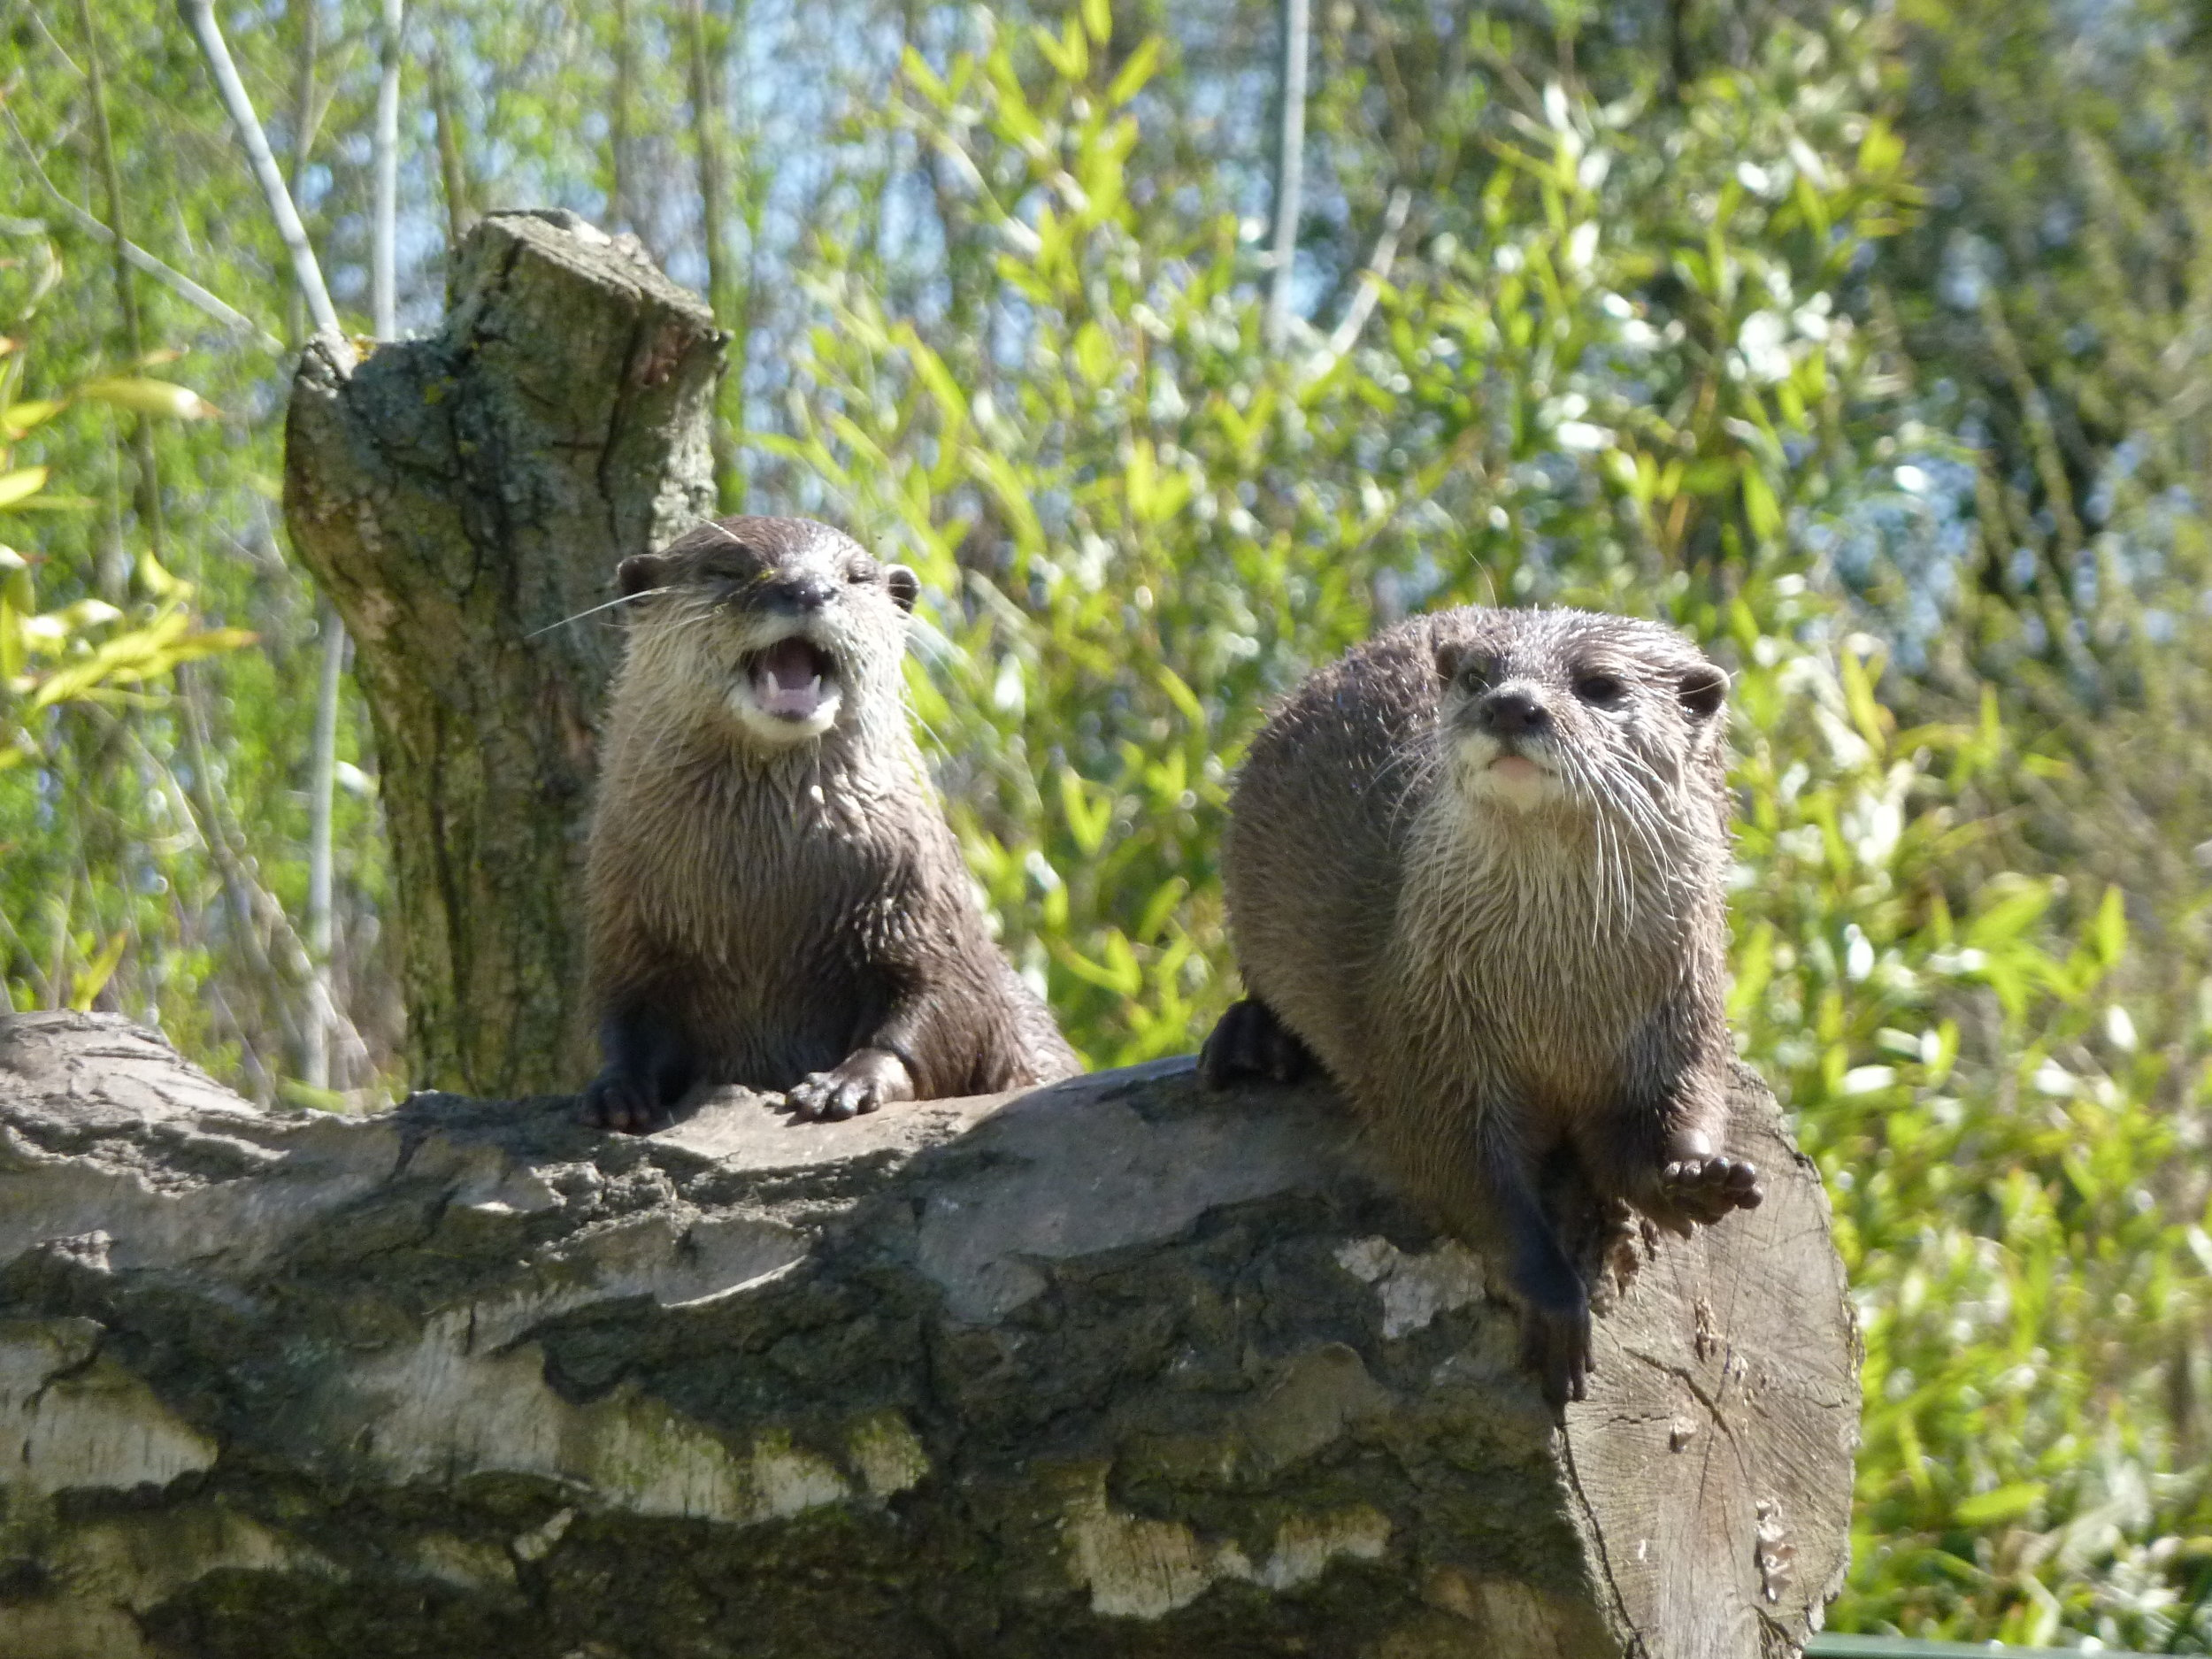 One Otter Sings While the Other Plays the Log Bongo